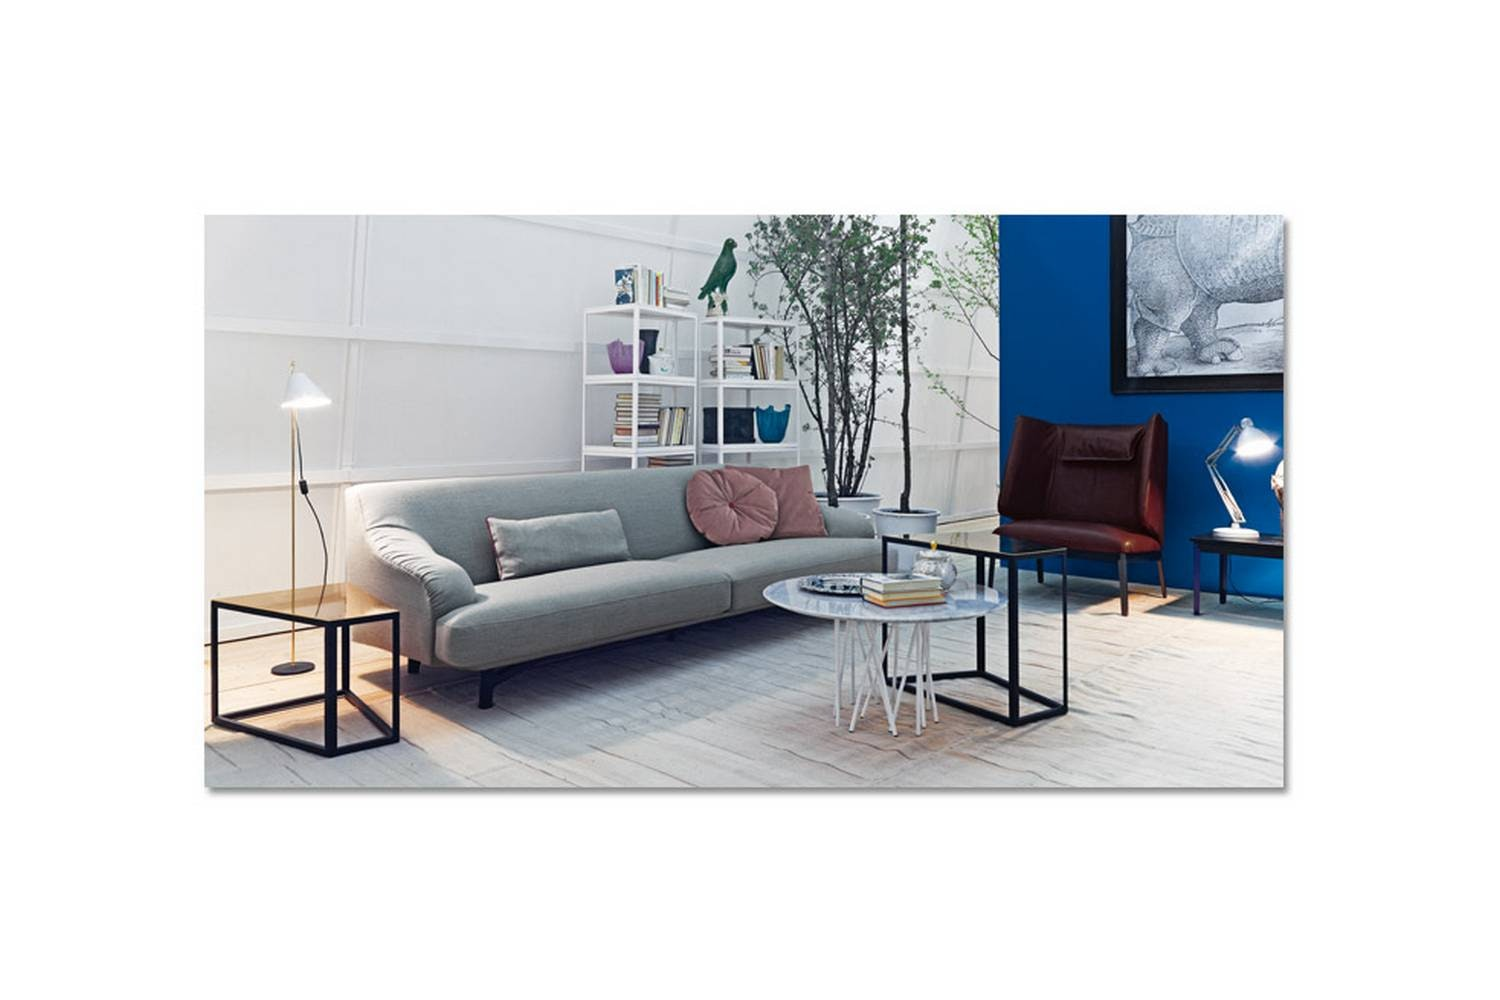 Filu Coffee Table by Paola Vella for Arflex